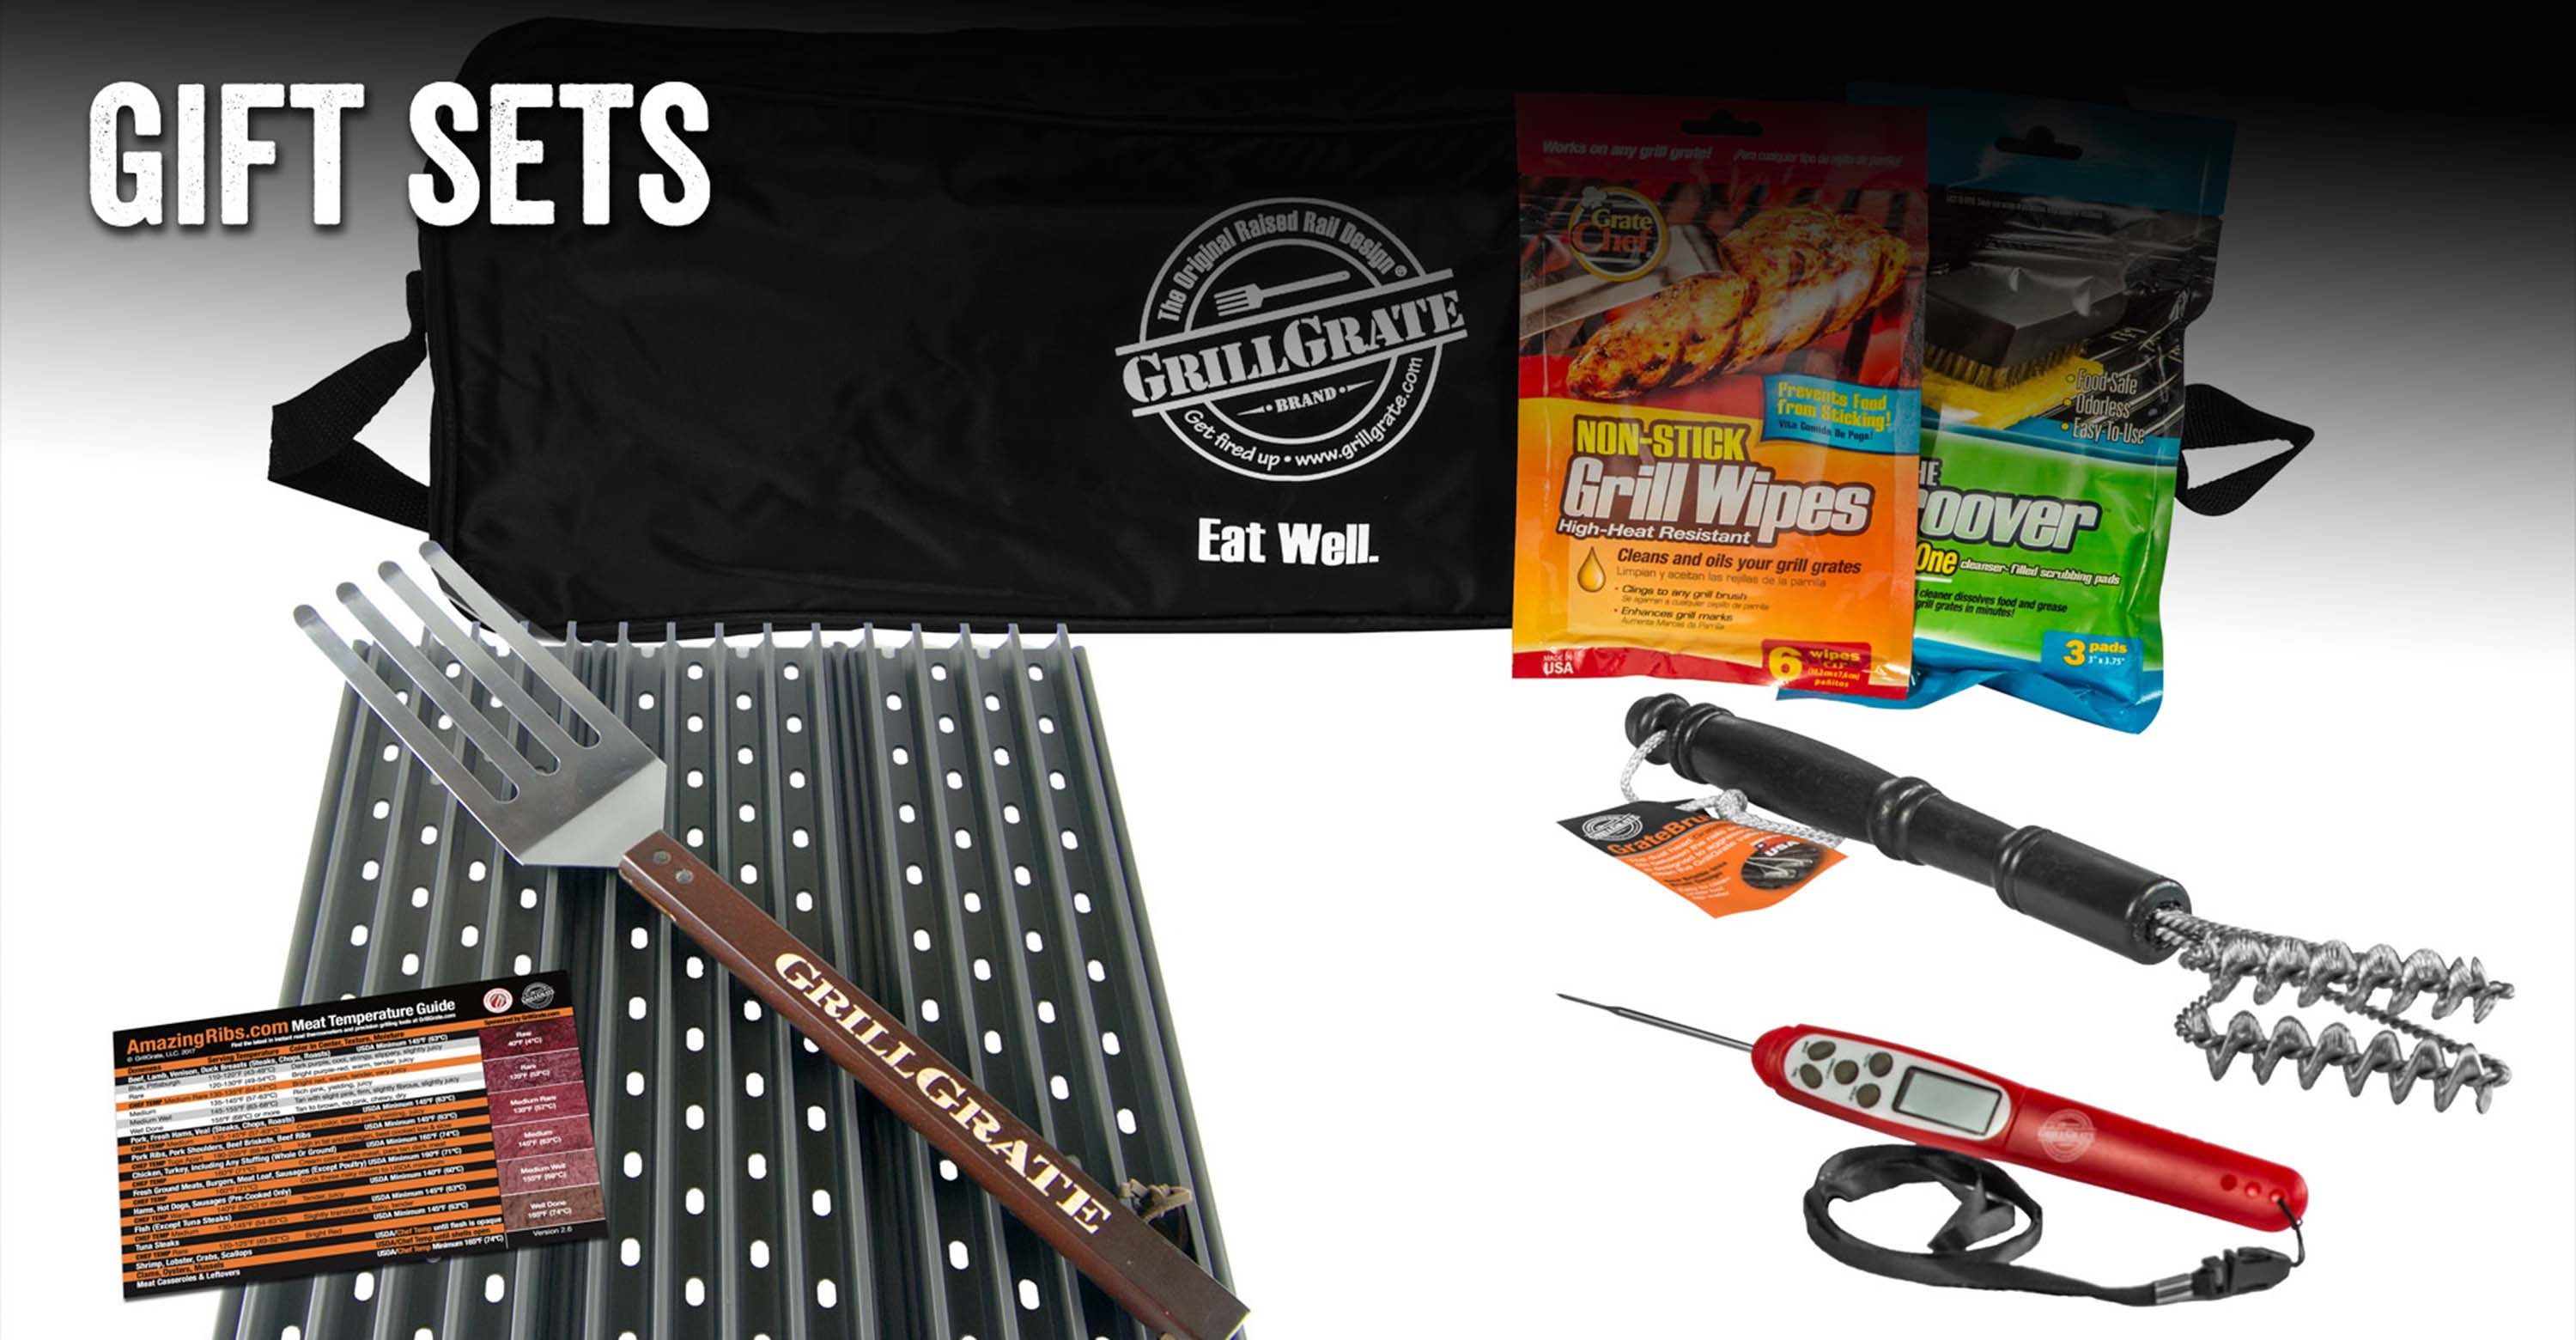 GrillGrate Gift Sets